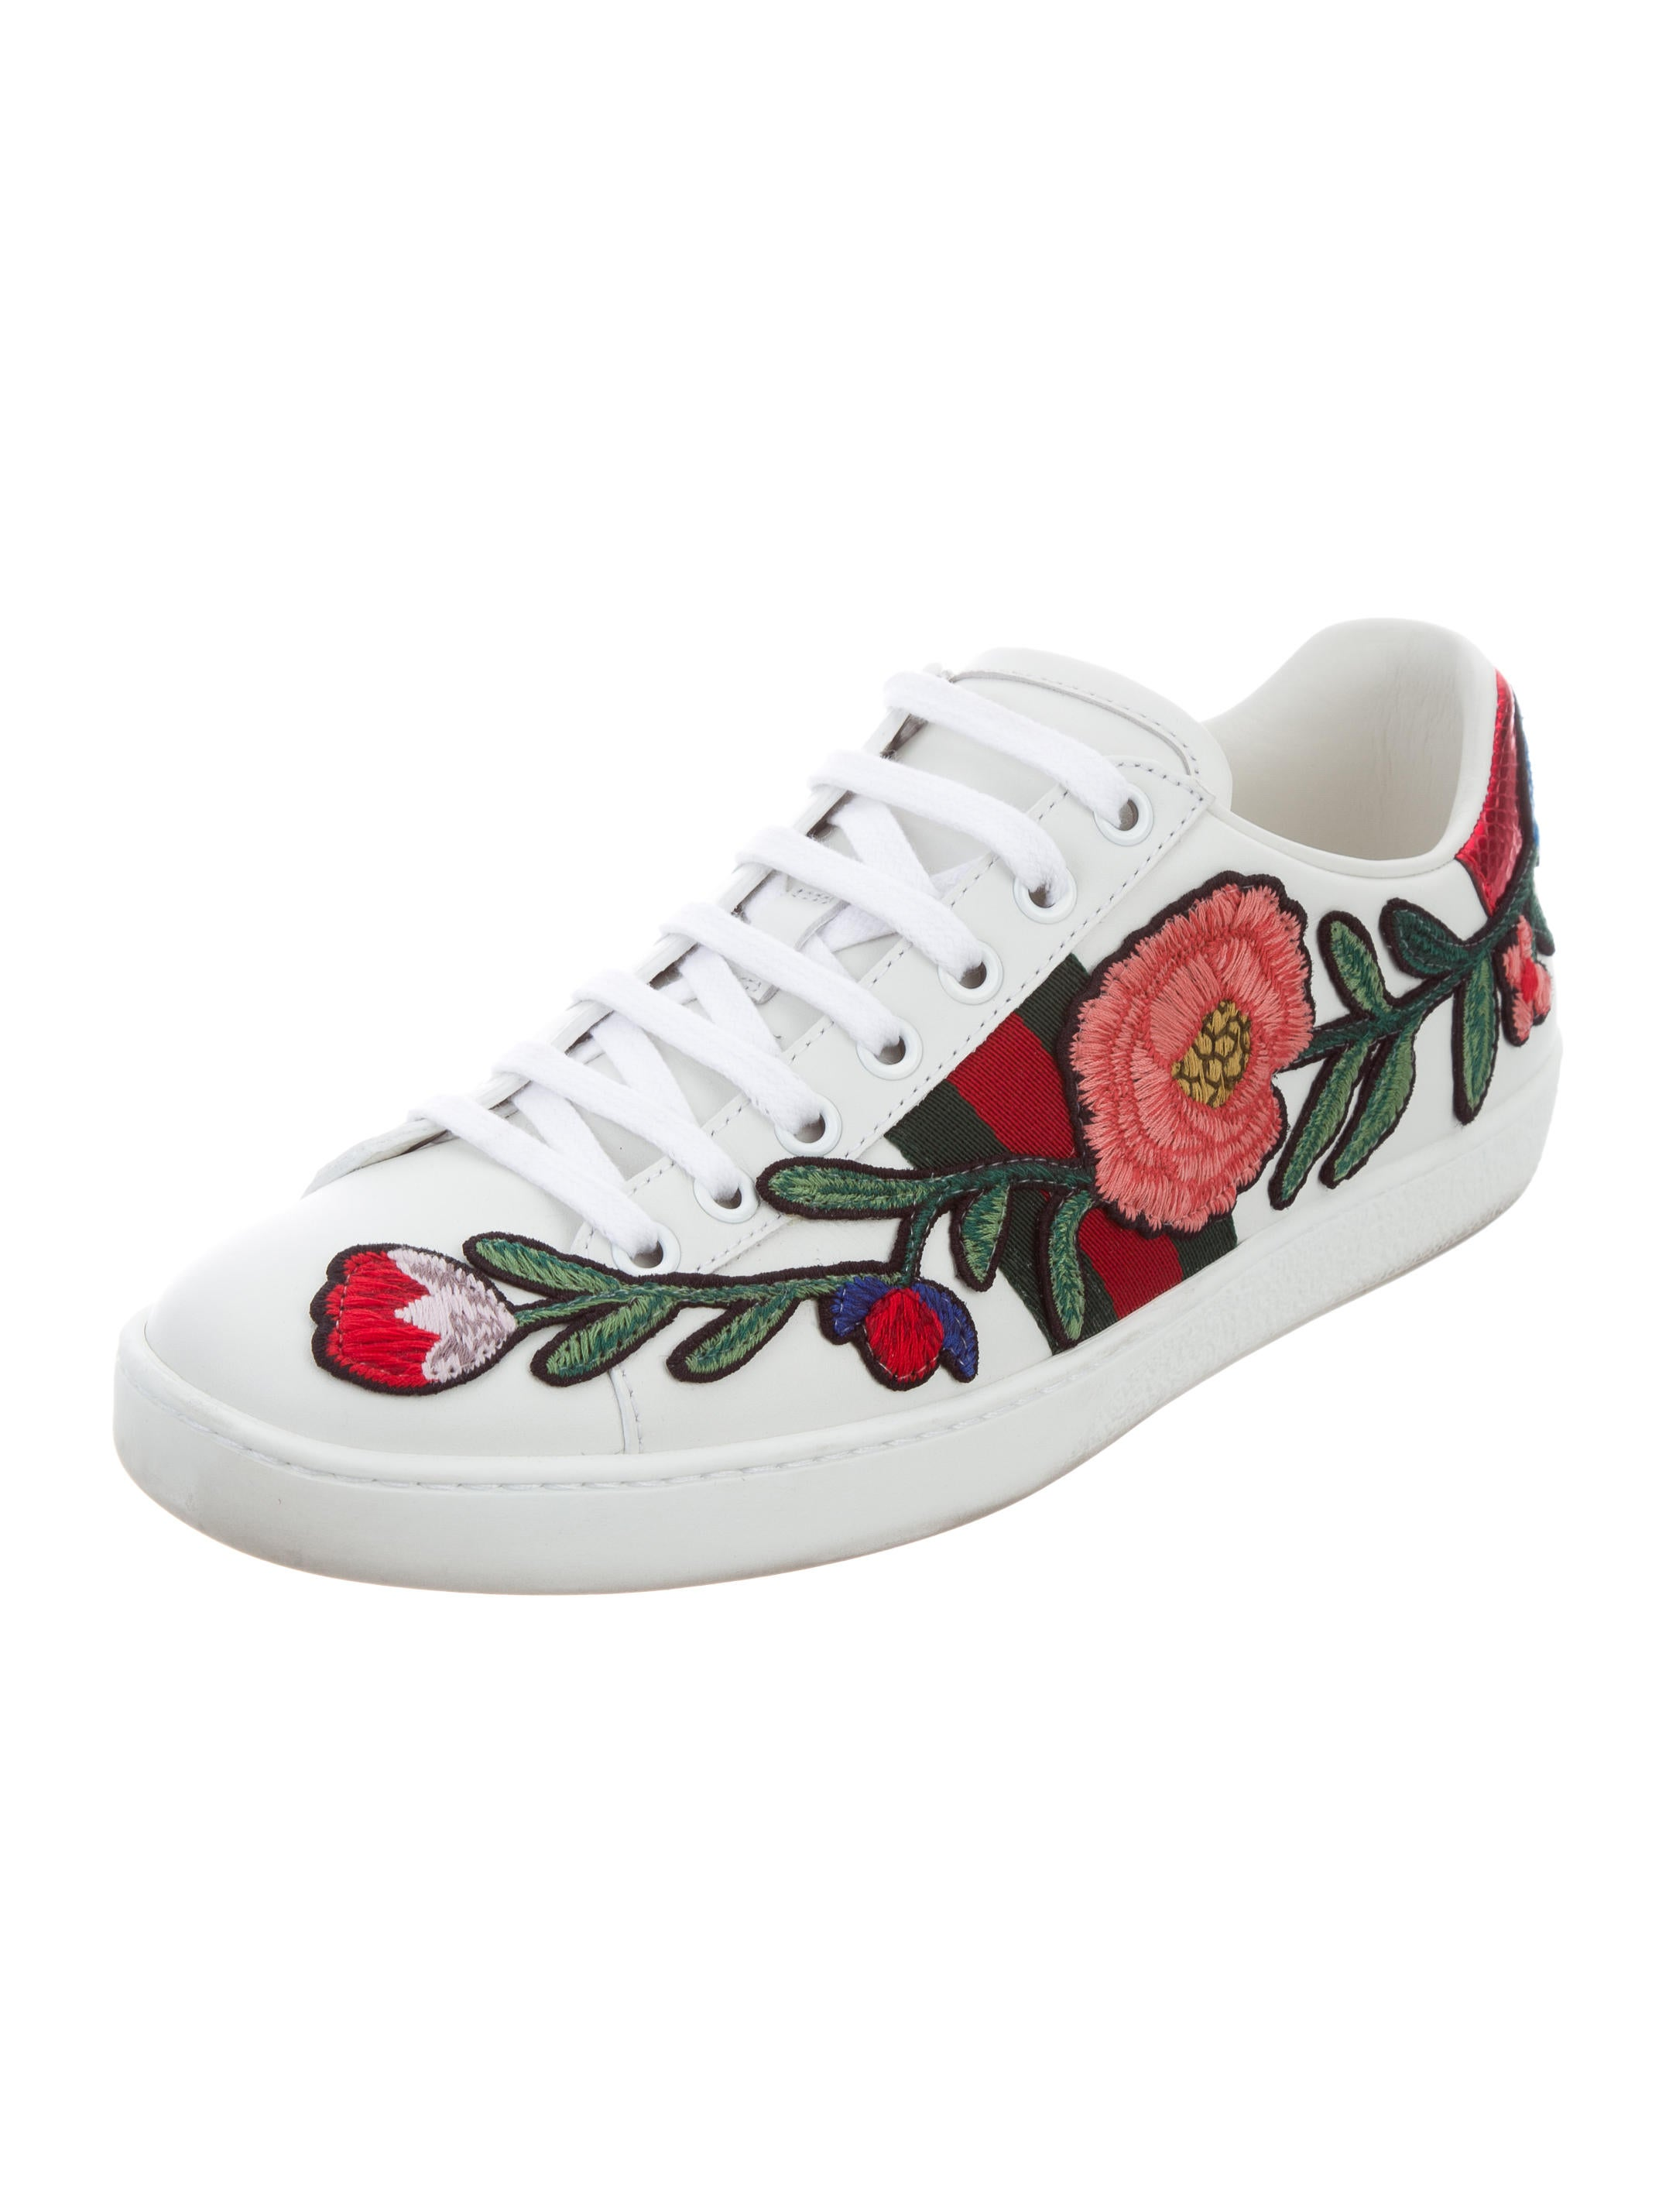 gucci 2017 new ace floral sneakers - shoes